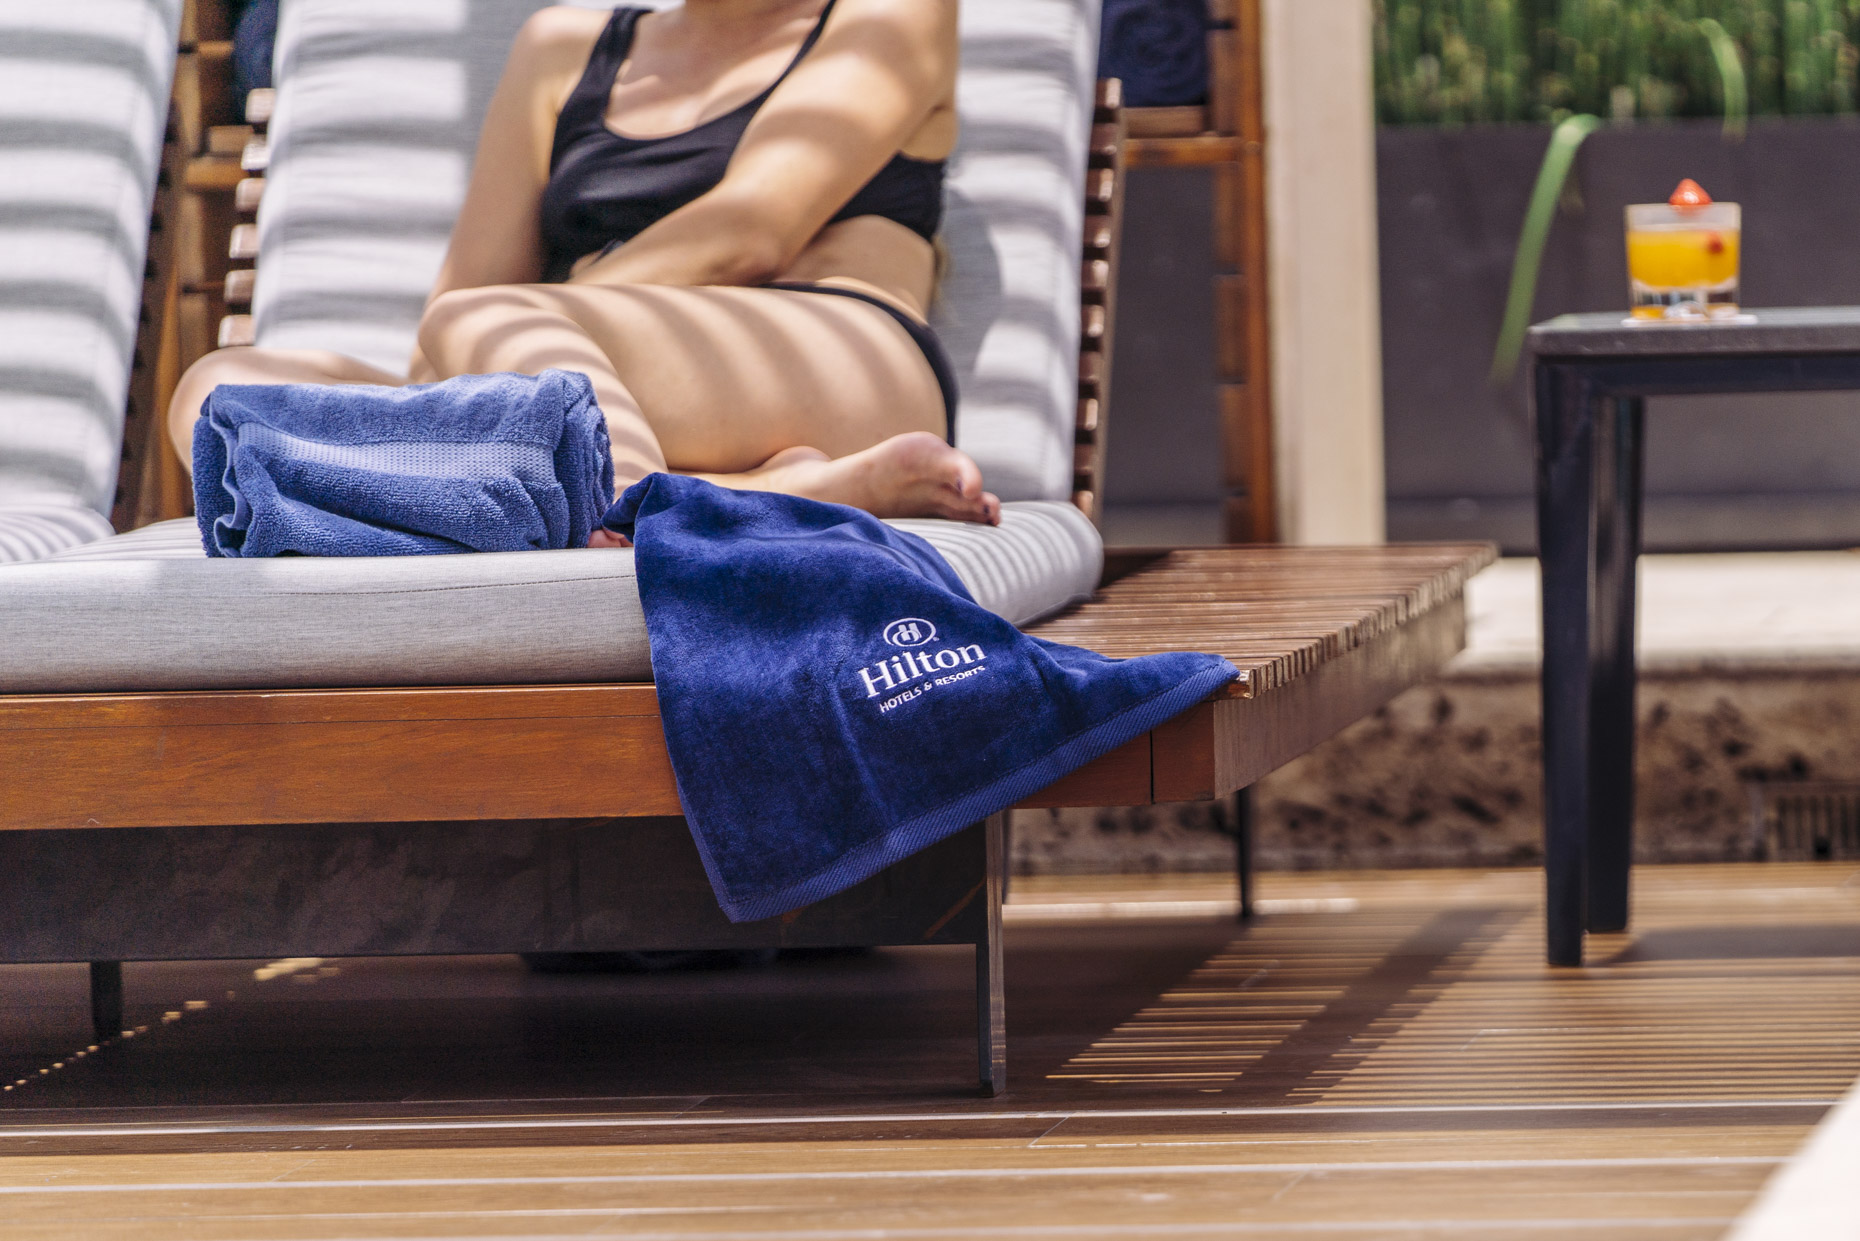 Detail shot of Hilton towel on pool lounger with woman sun bathing